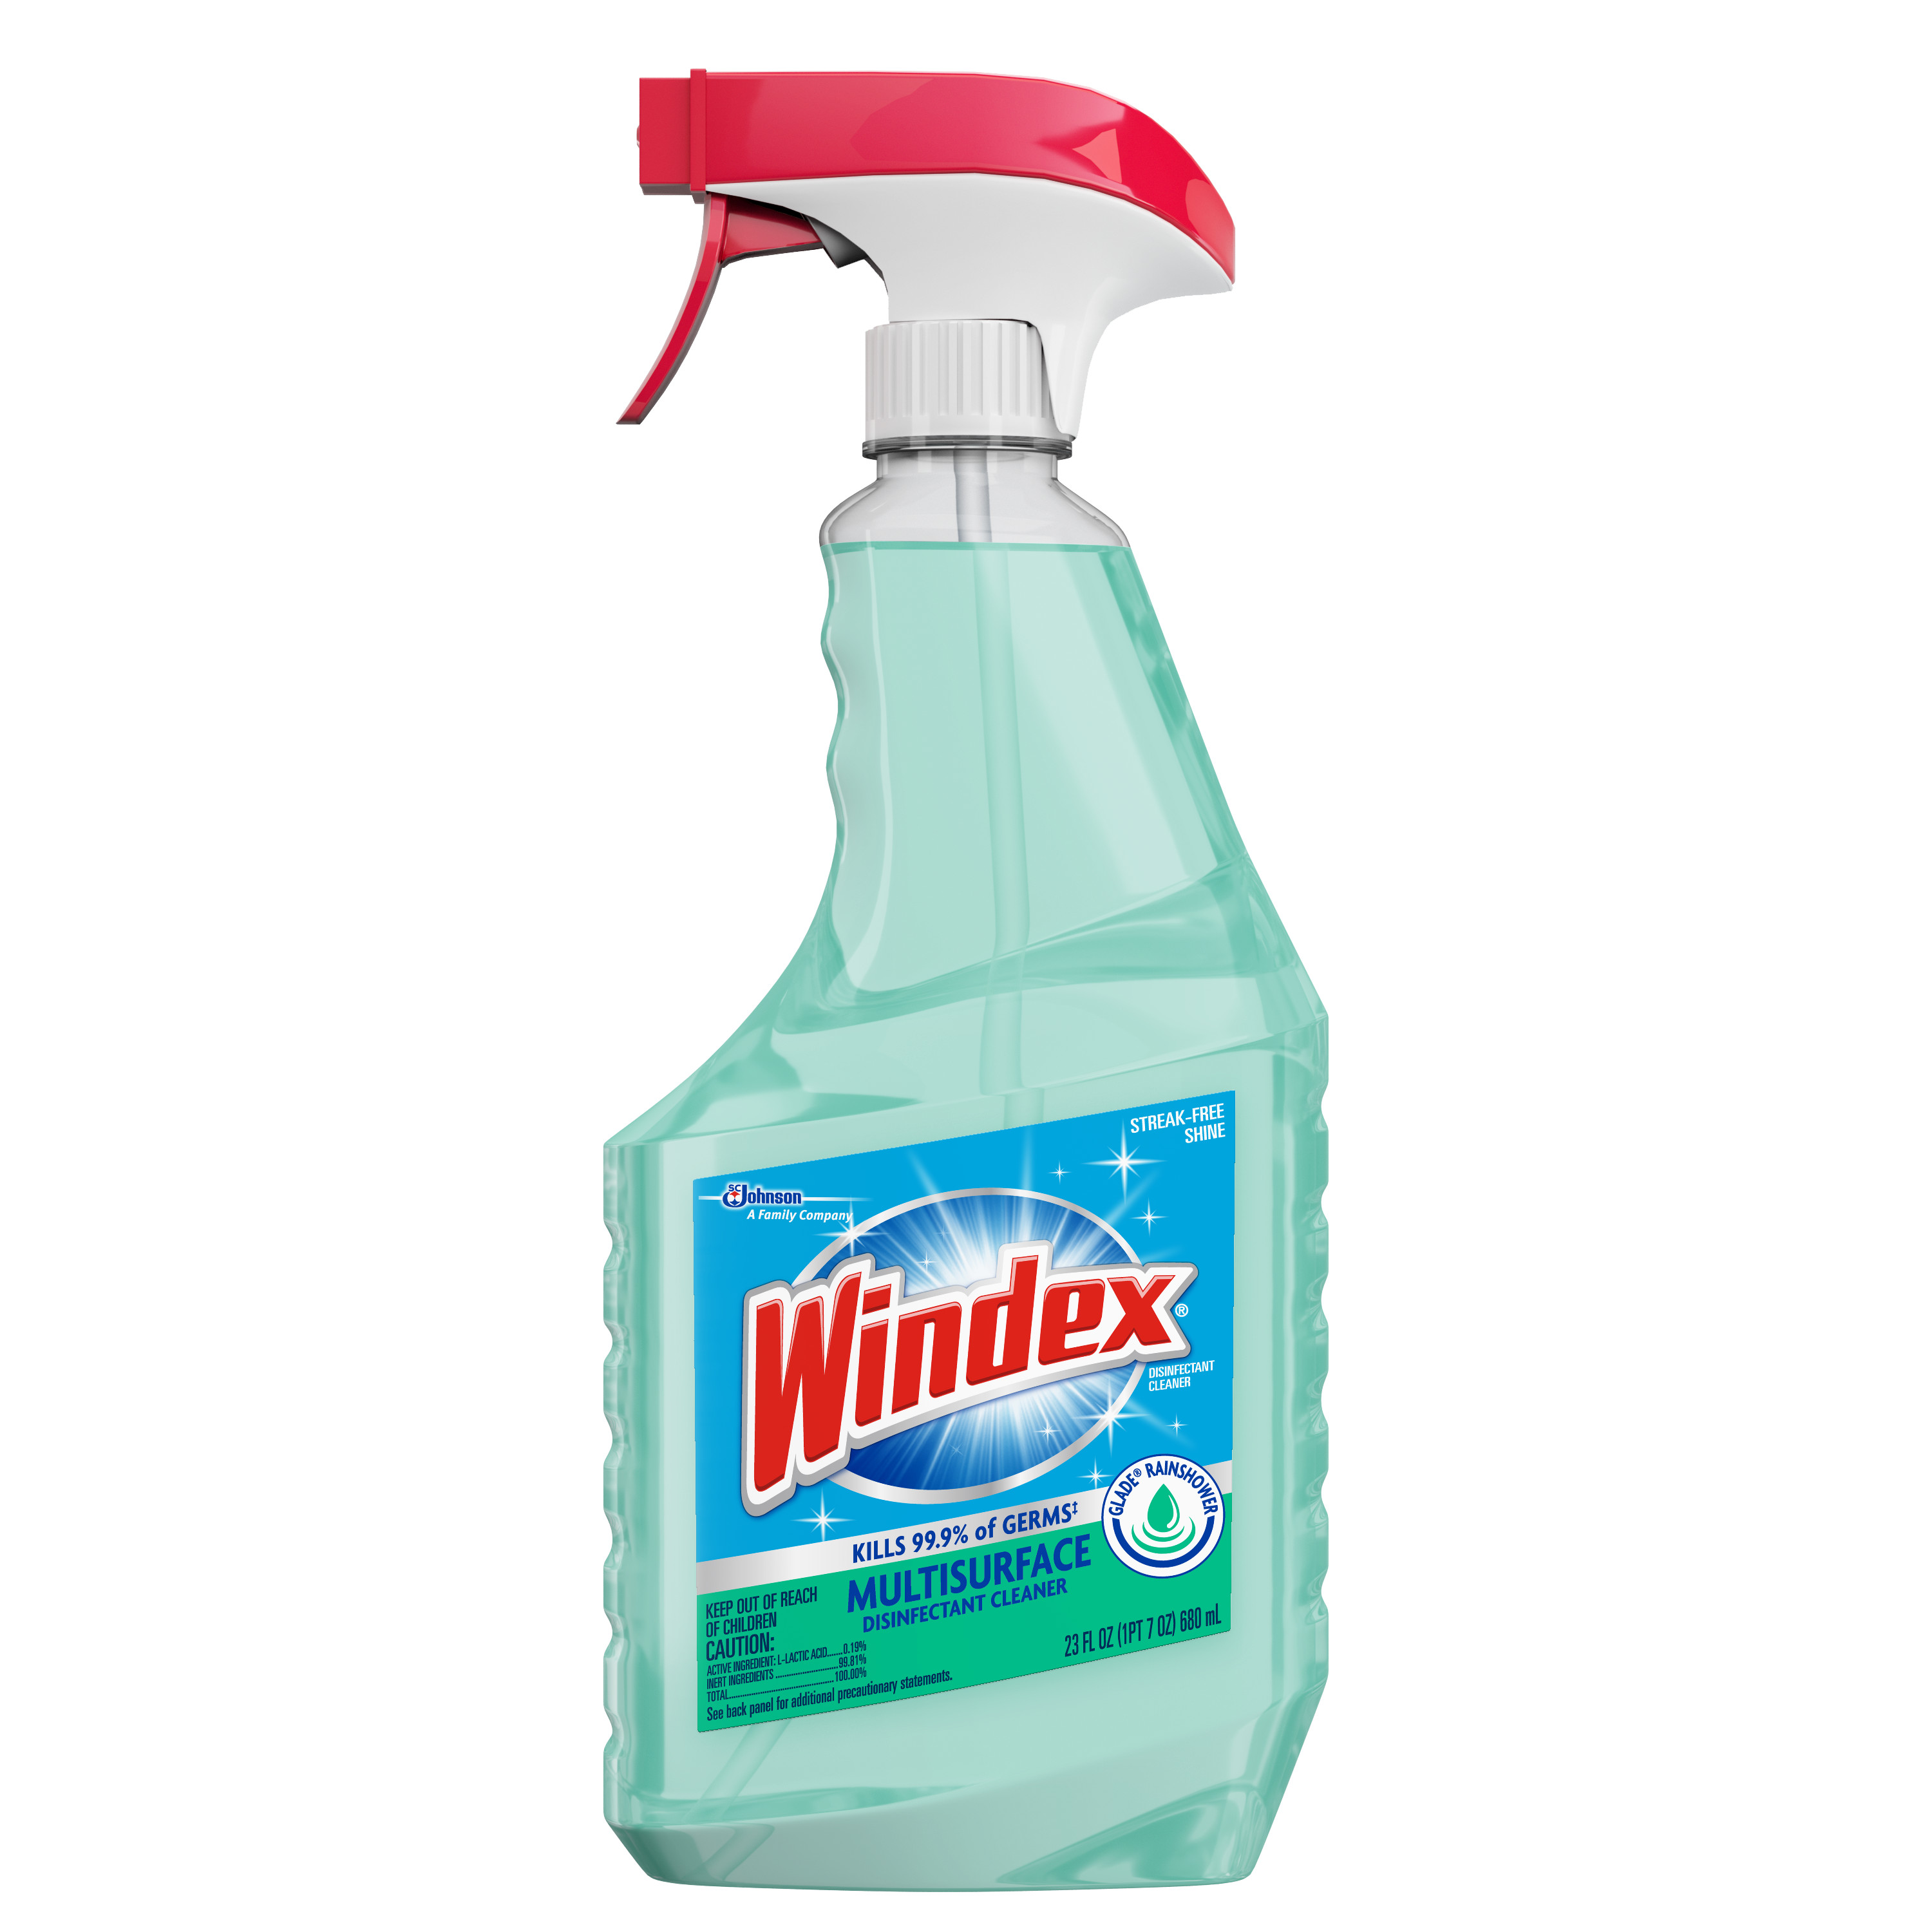 Windex Disinfectant Cleaner Multi-Surface Trigger, Glade Rainshower, 23 Fluid Ounces